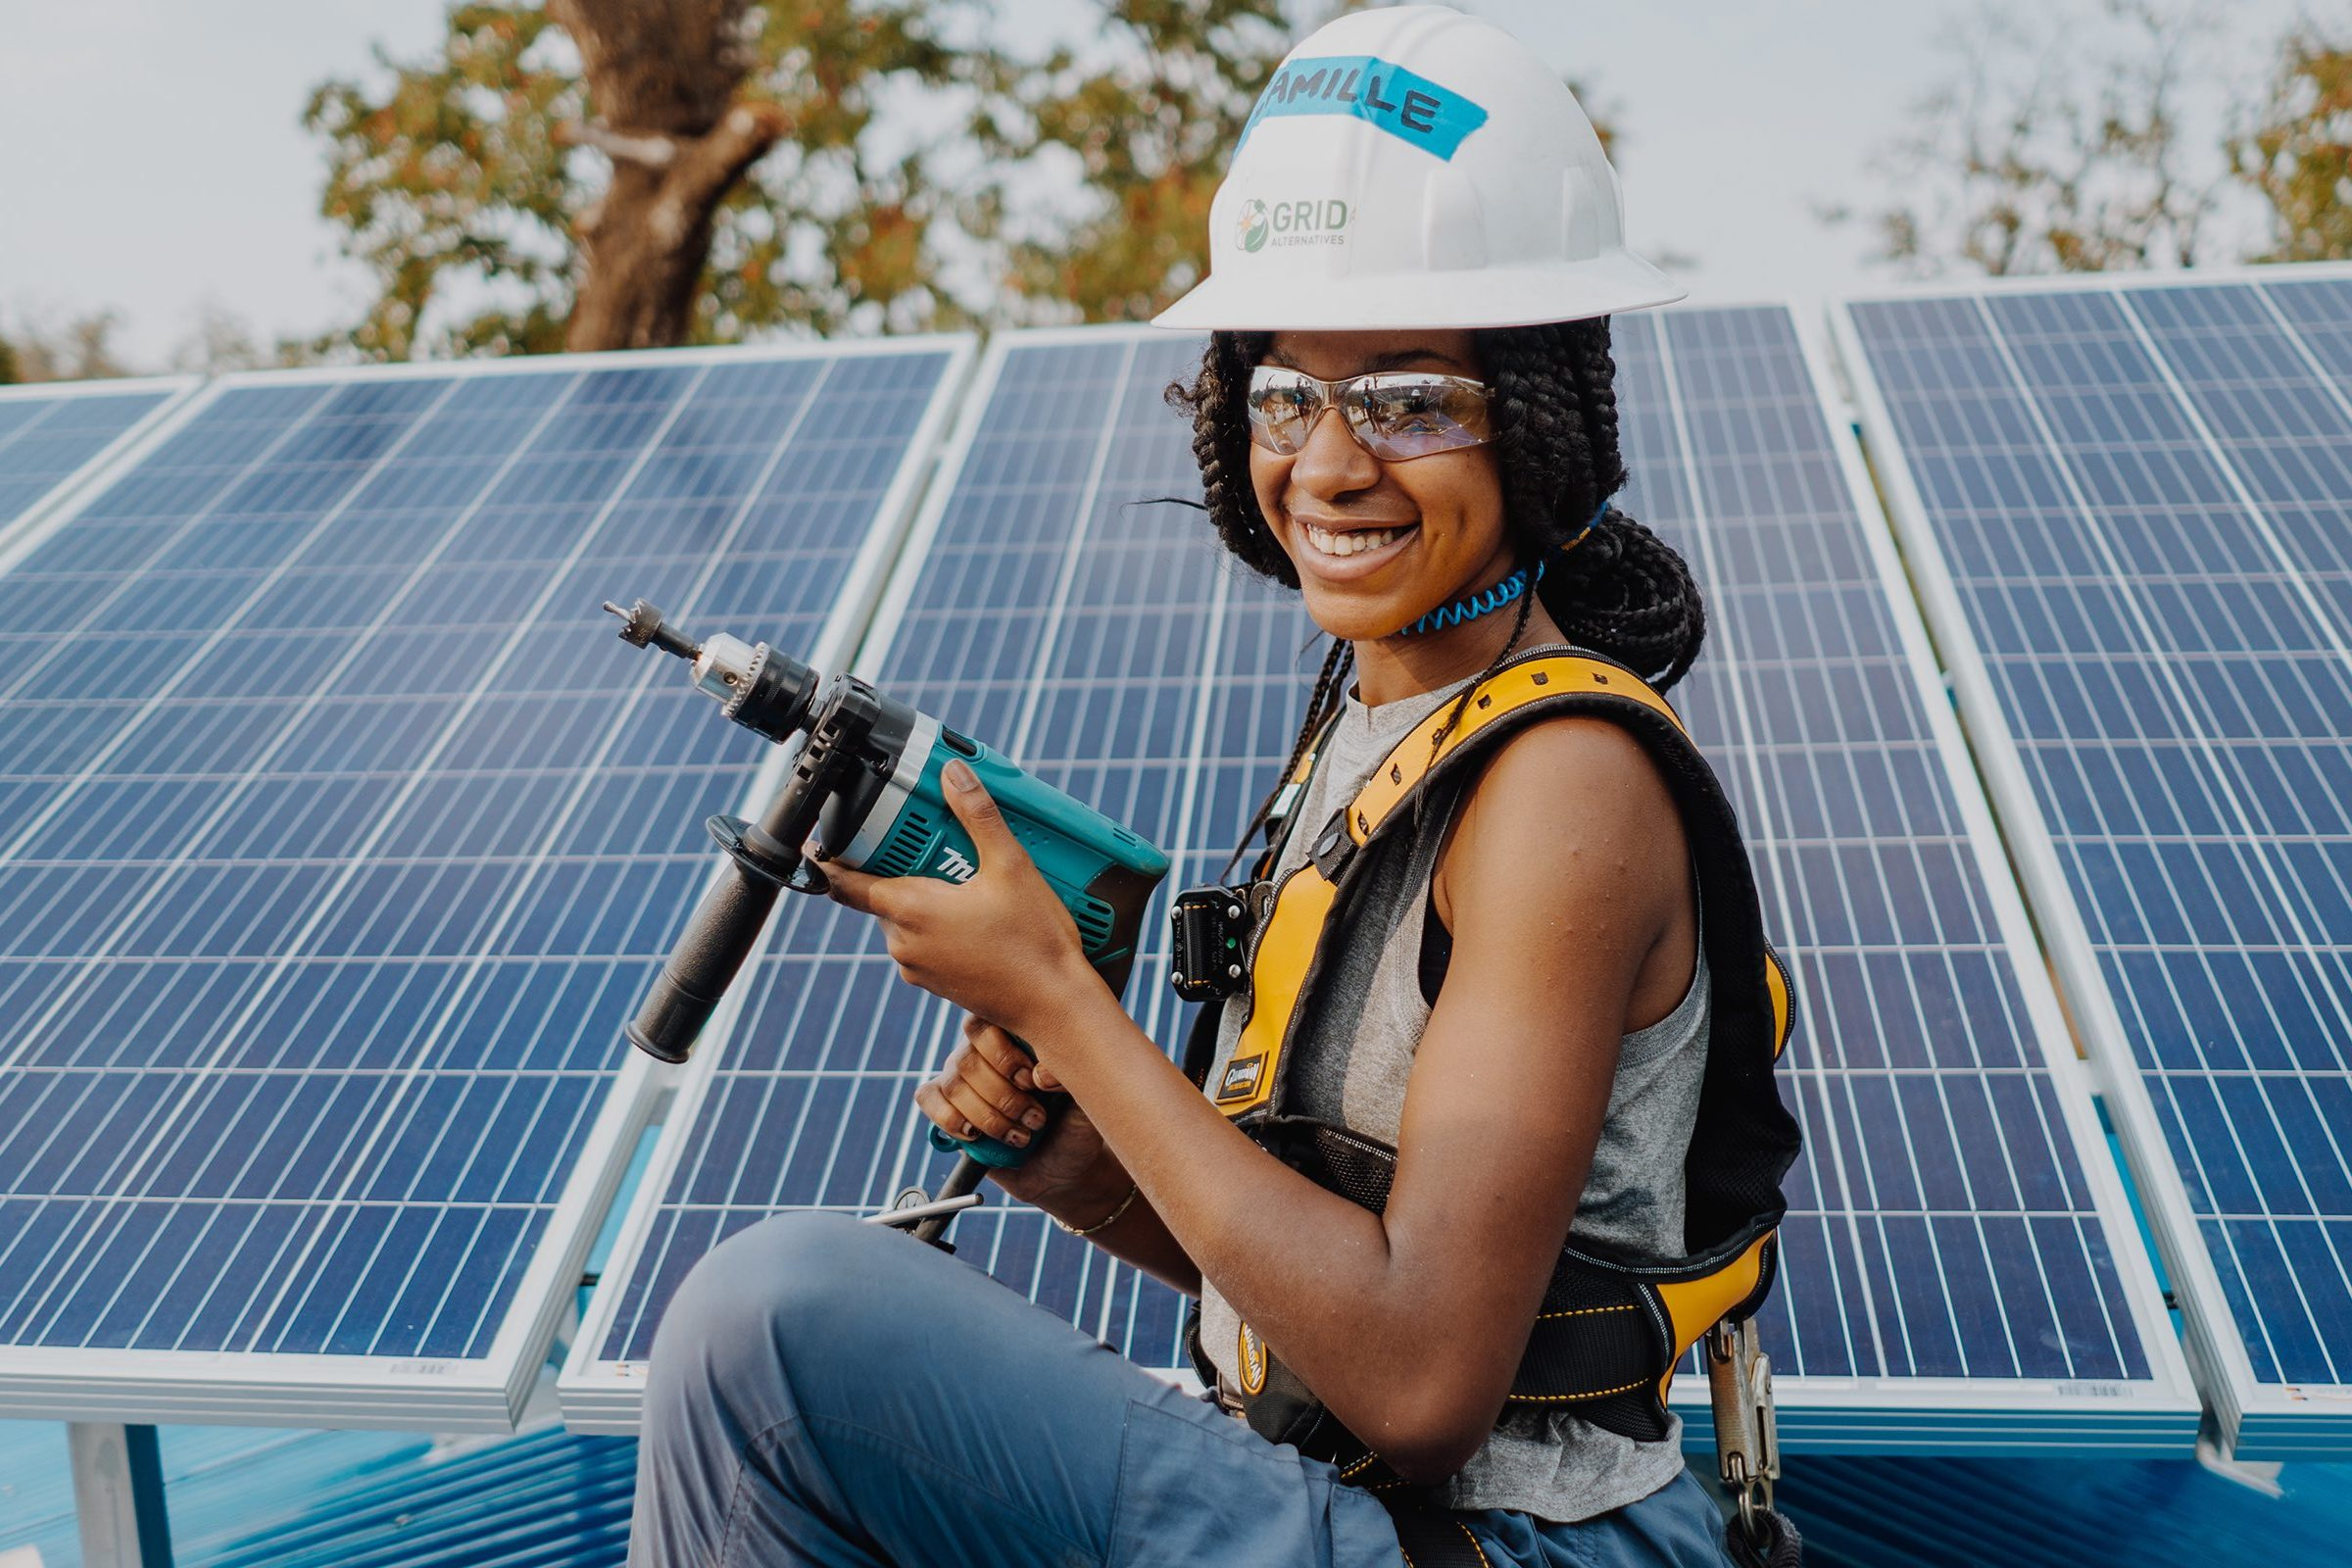 Building community through clean energy with GRID Alternatives